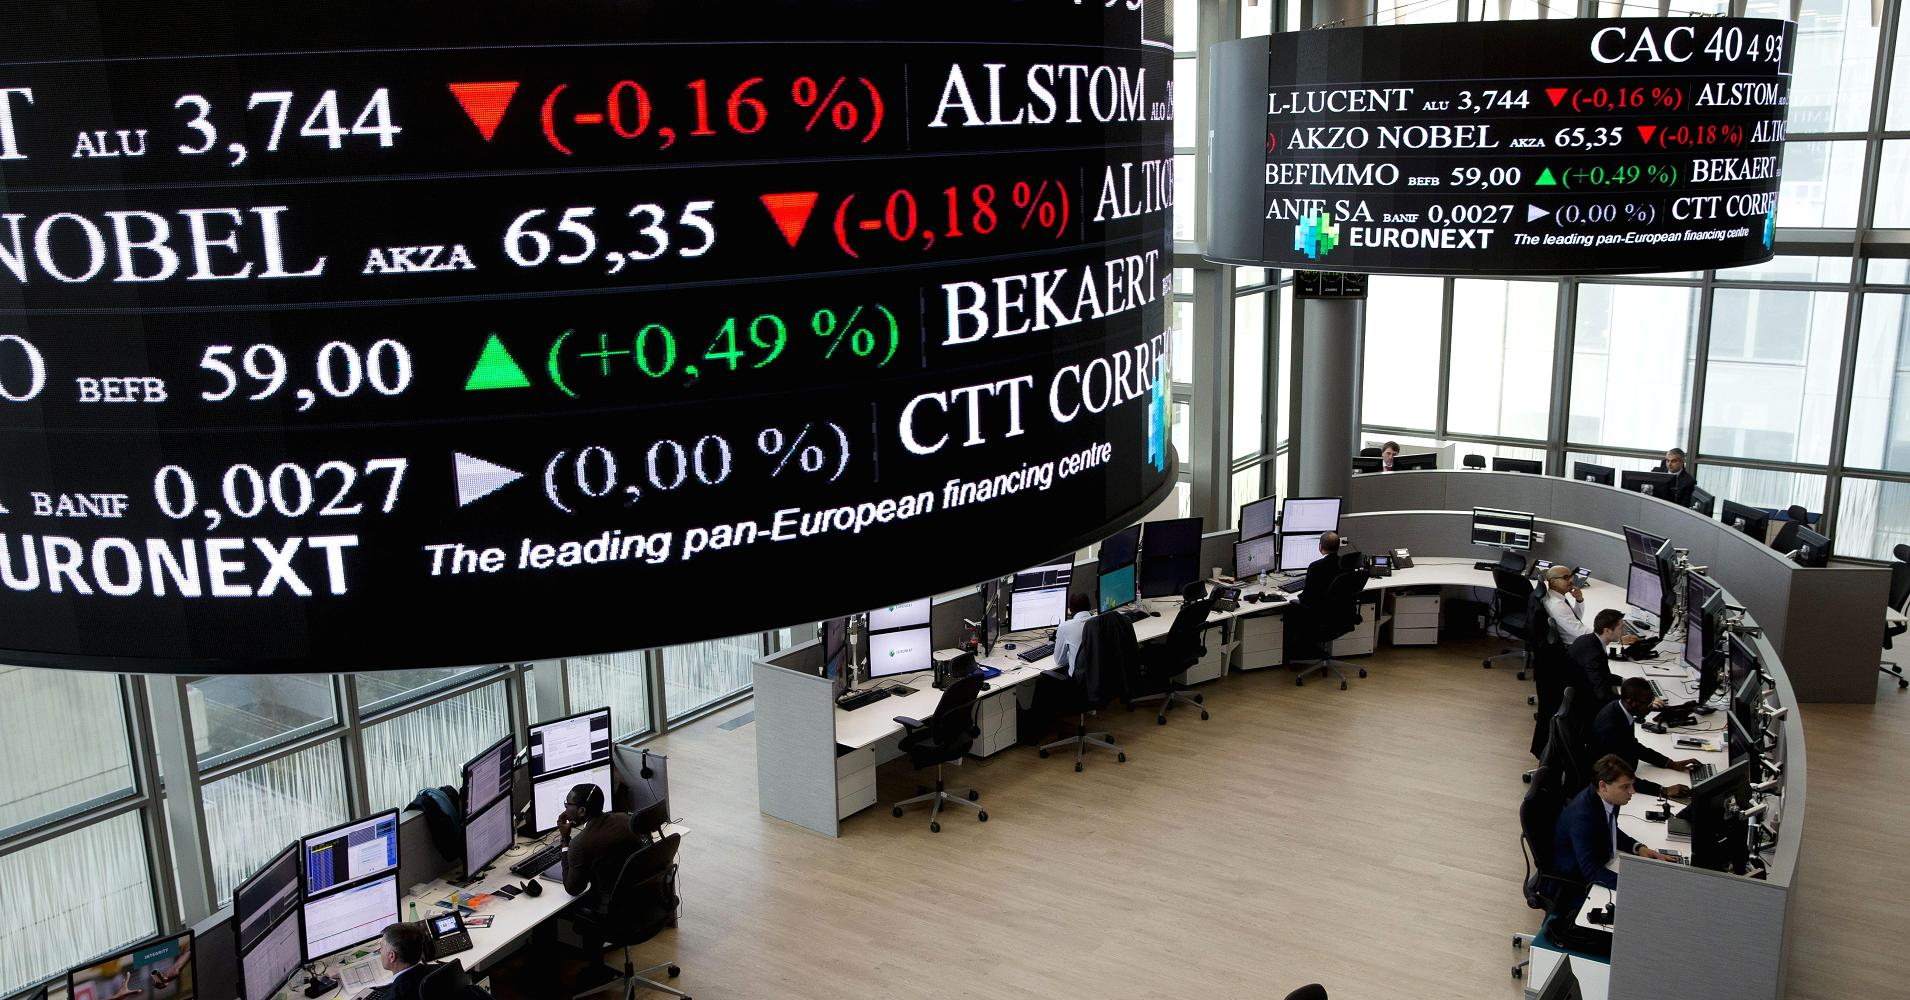 European Markets Close Higher on Gains by Banking Stocks